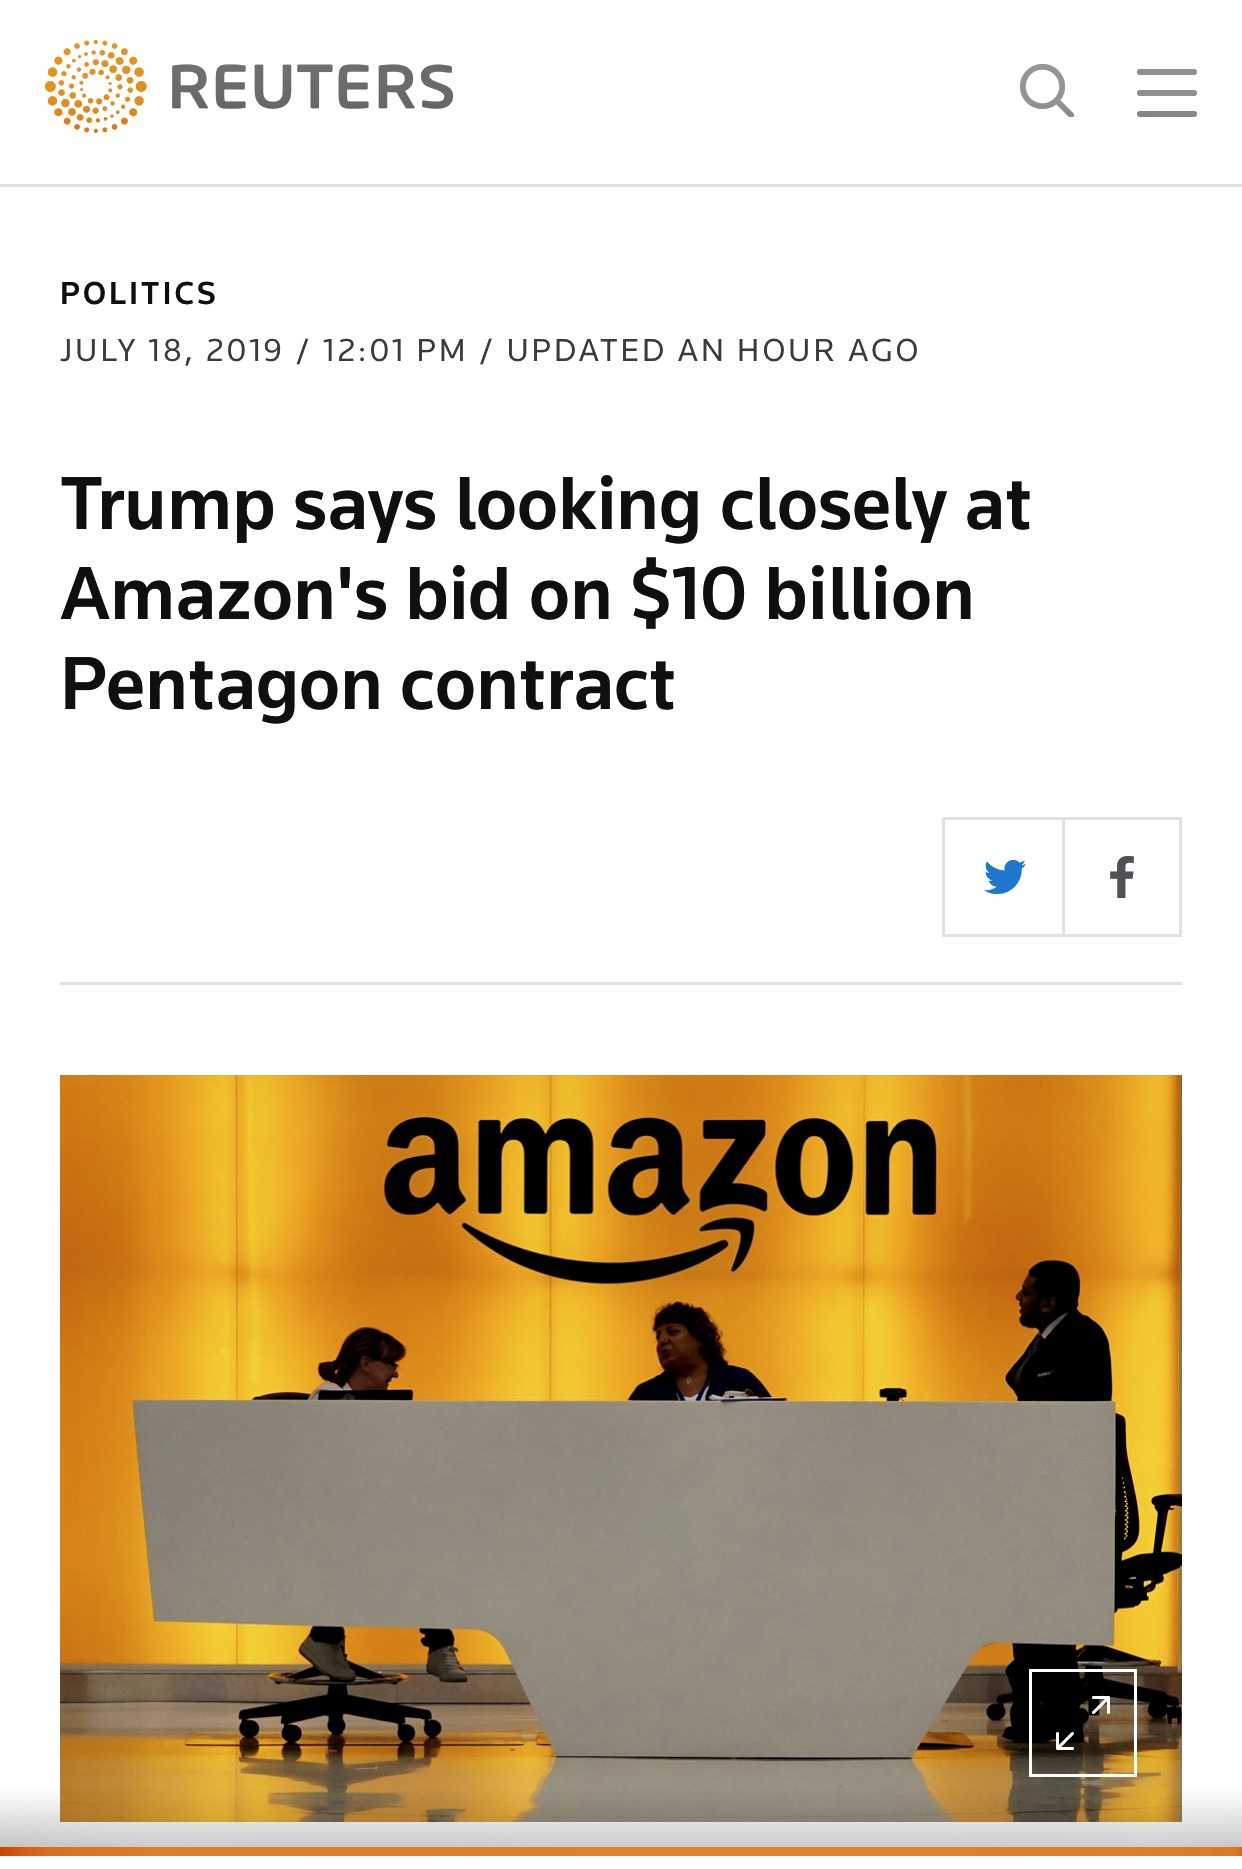 President Trump is looking closely at Amazon's bid on $10 billion Pentagon contract – Reuters